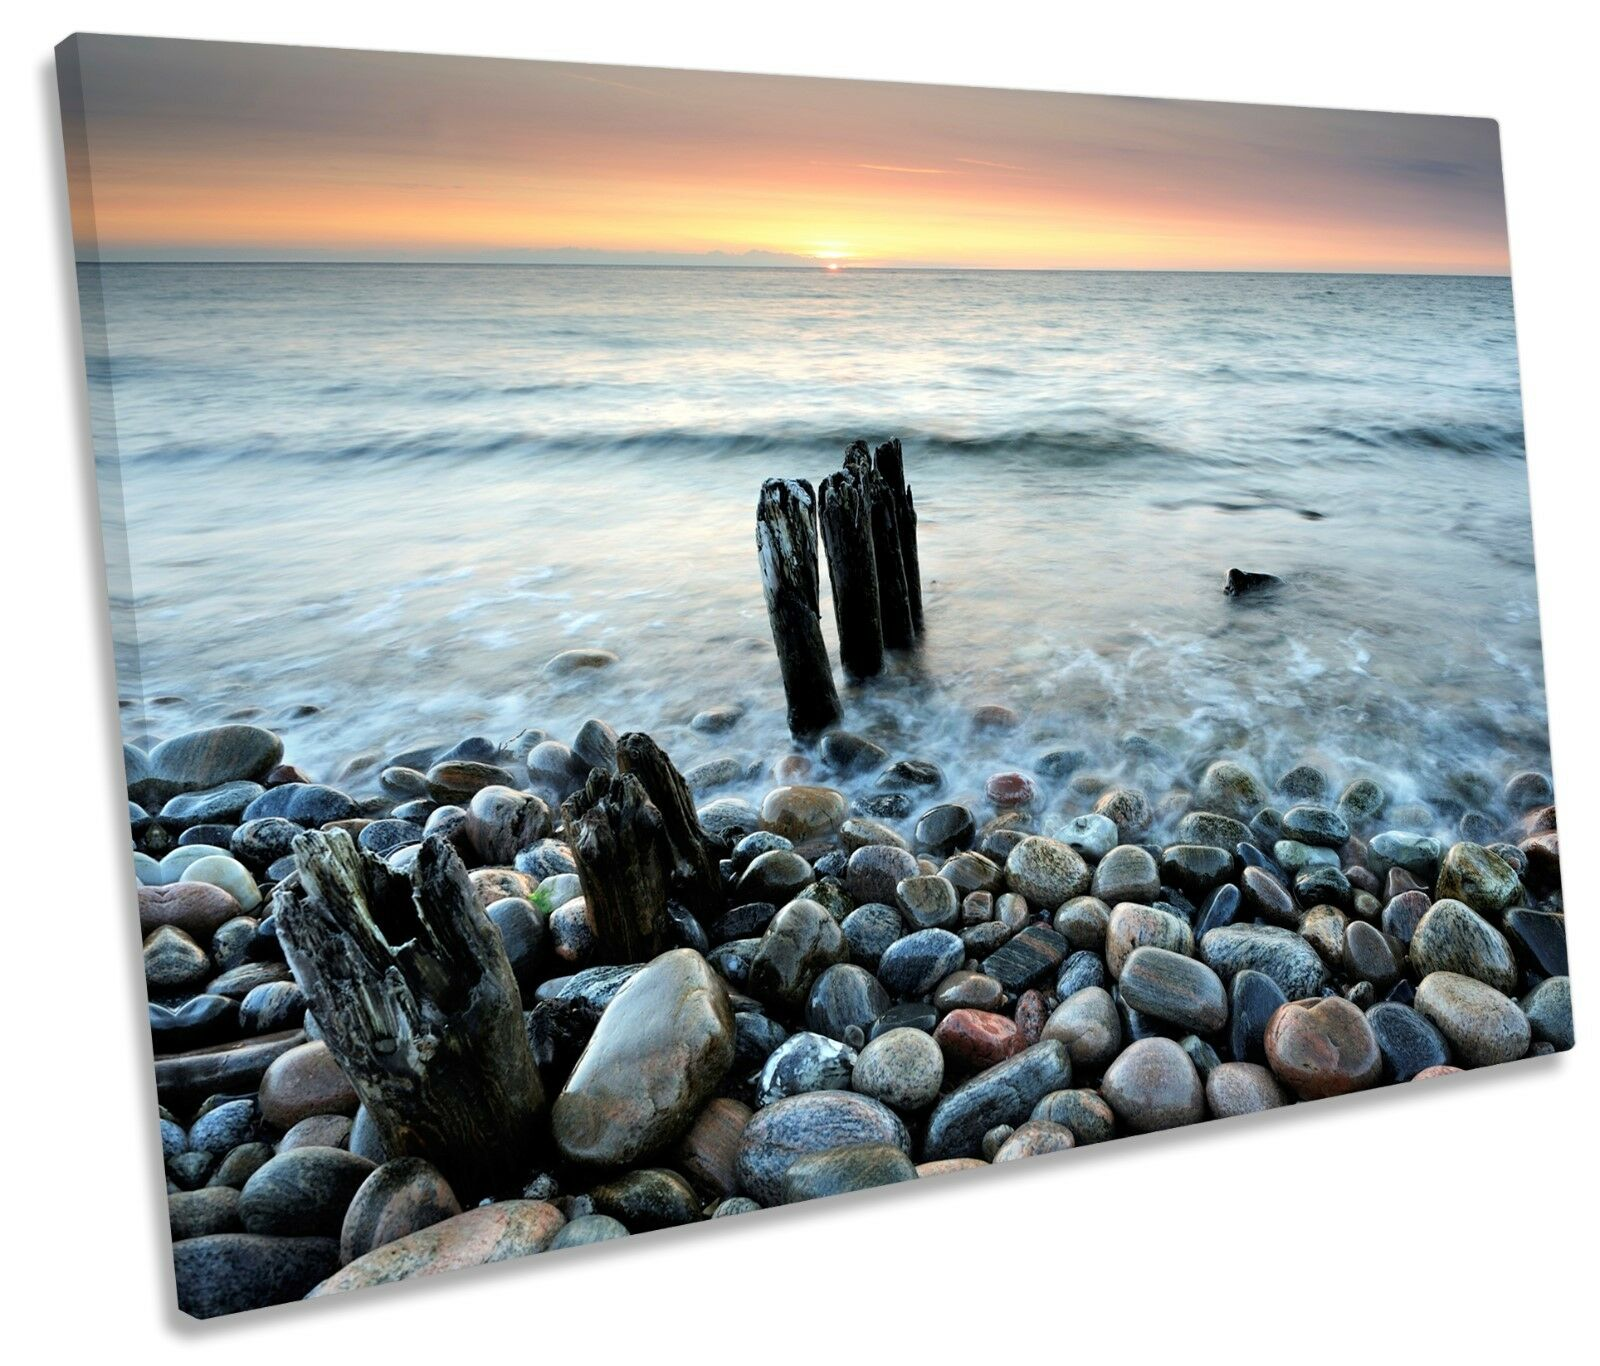 Sunset Pebble Beach Seascape SINGLE CANVAS Wand Kunst Box Framed